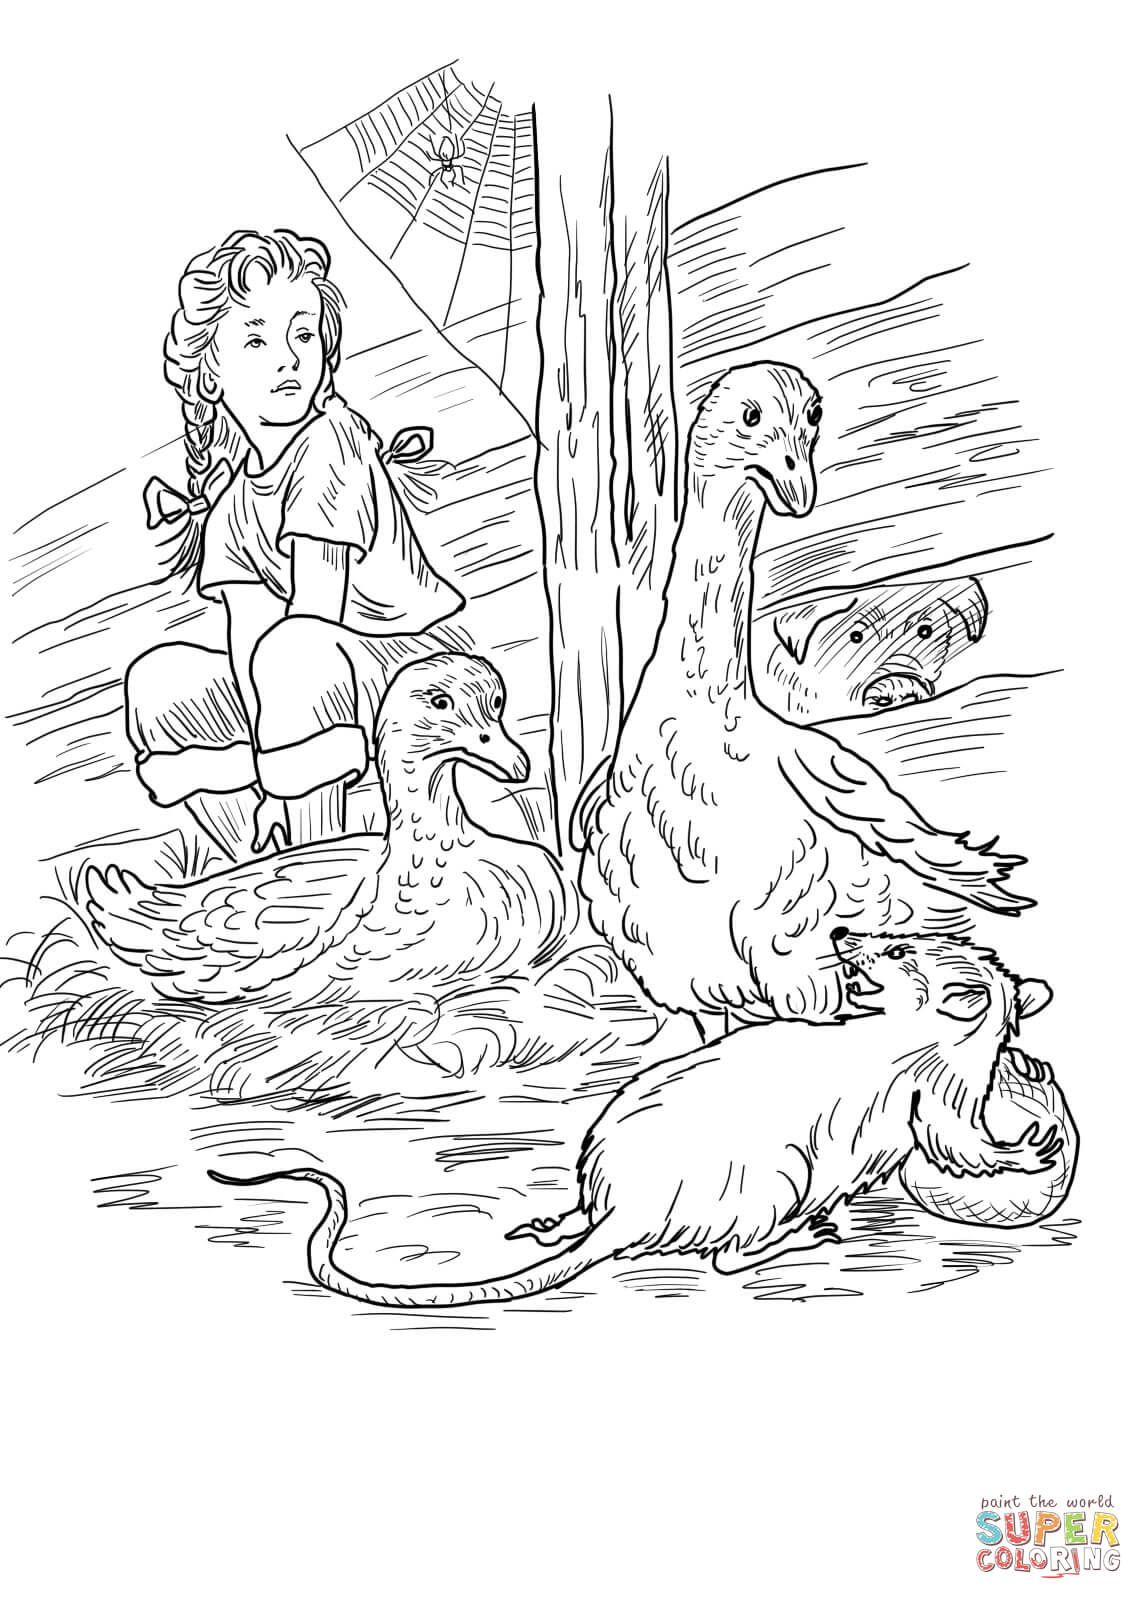 charlotte-fern-gooses-templeton-and-wilbur-coloring-page.jpg (1144 ...